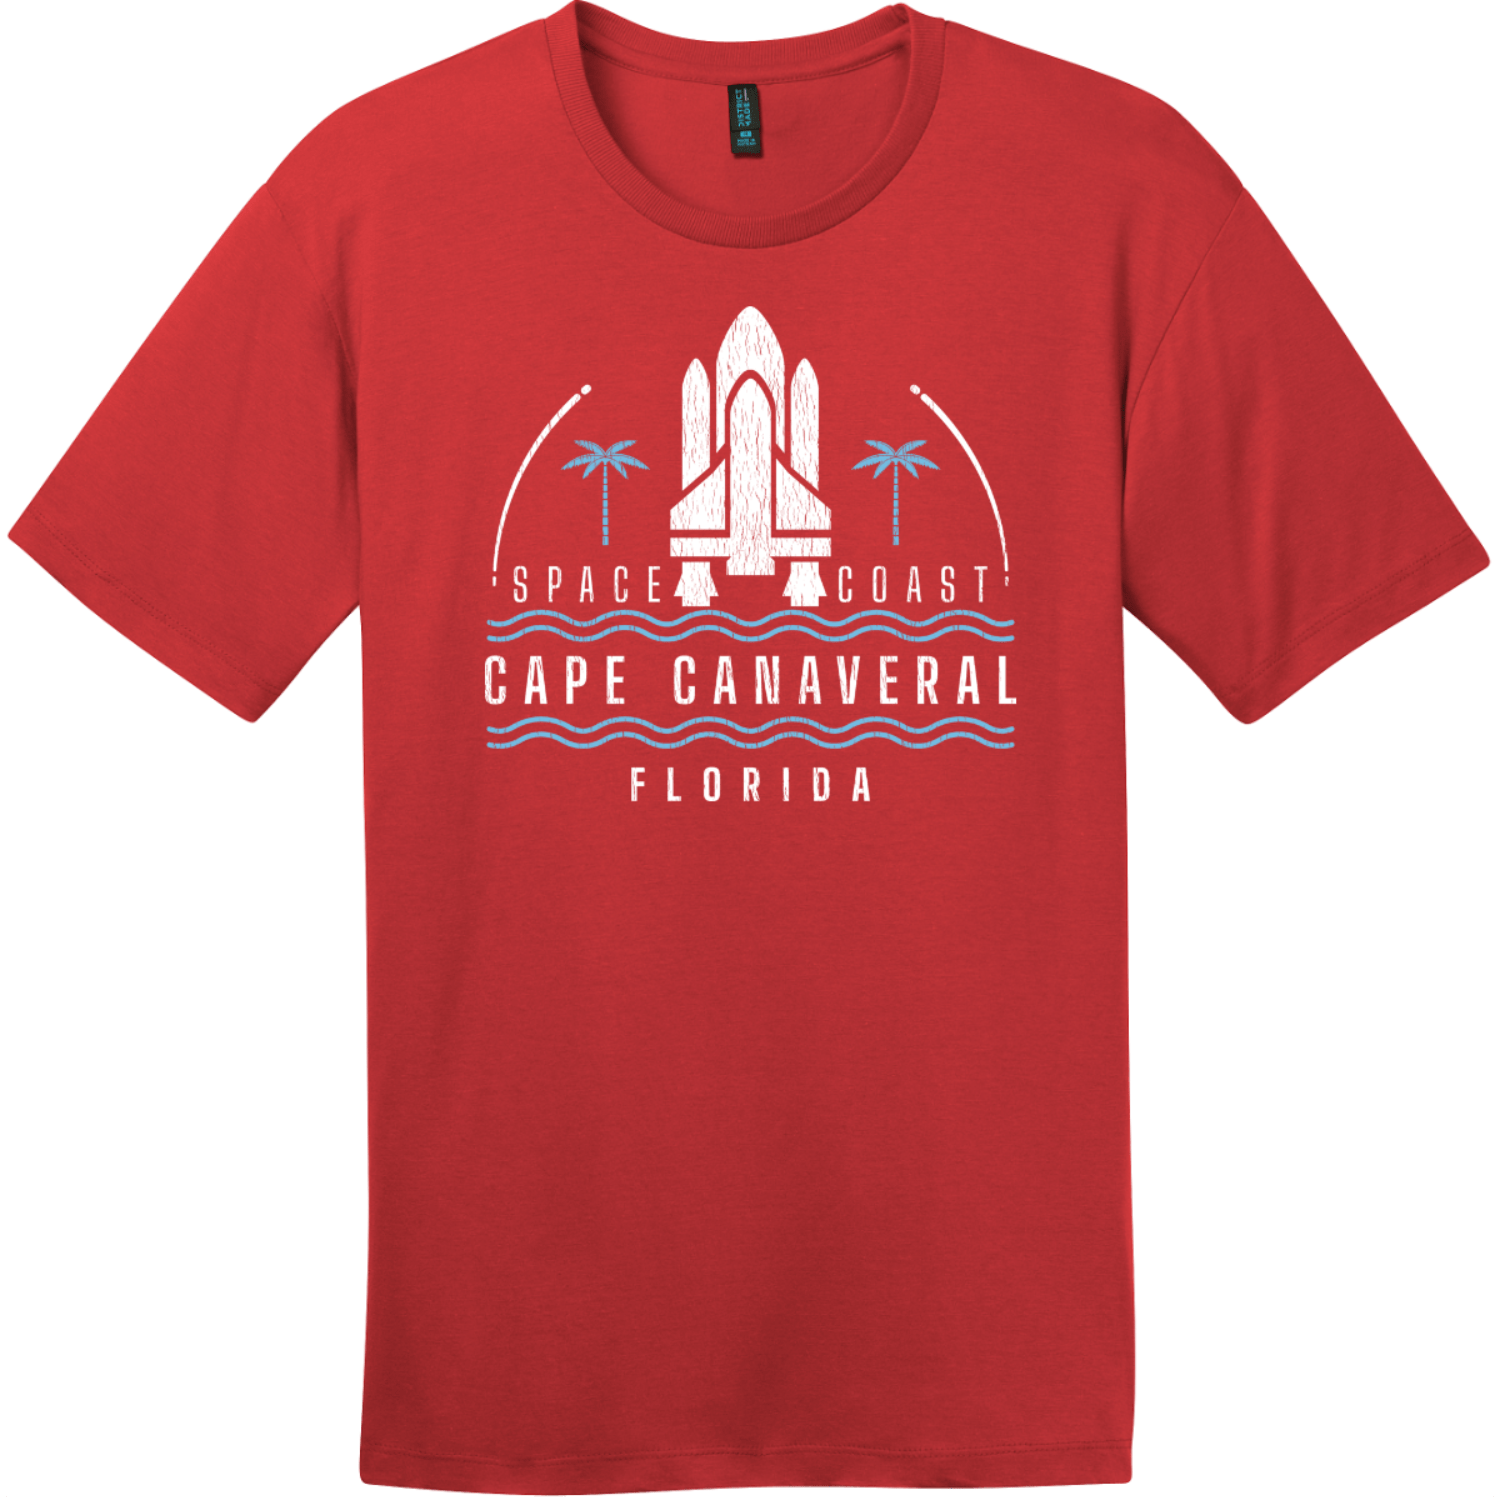 Cape Canaveral Space Coast Vintage T-Shirt Classic Red District Perfect Weight Tee DT104